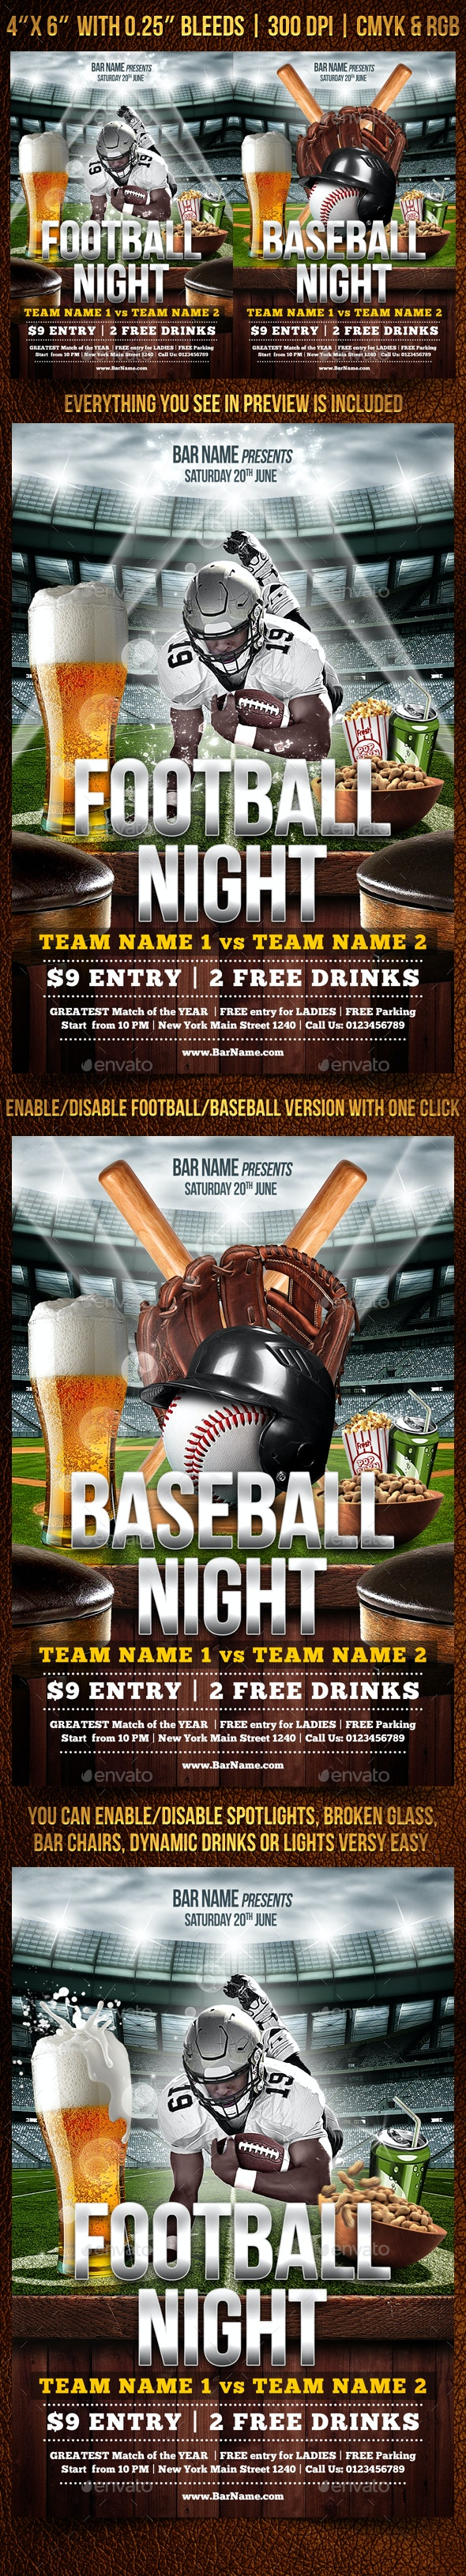 Football and Baseball Flyer Template - Sports Events